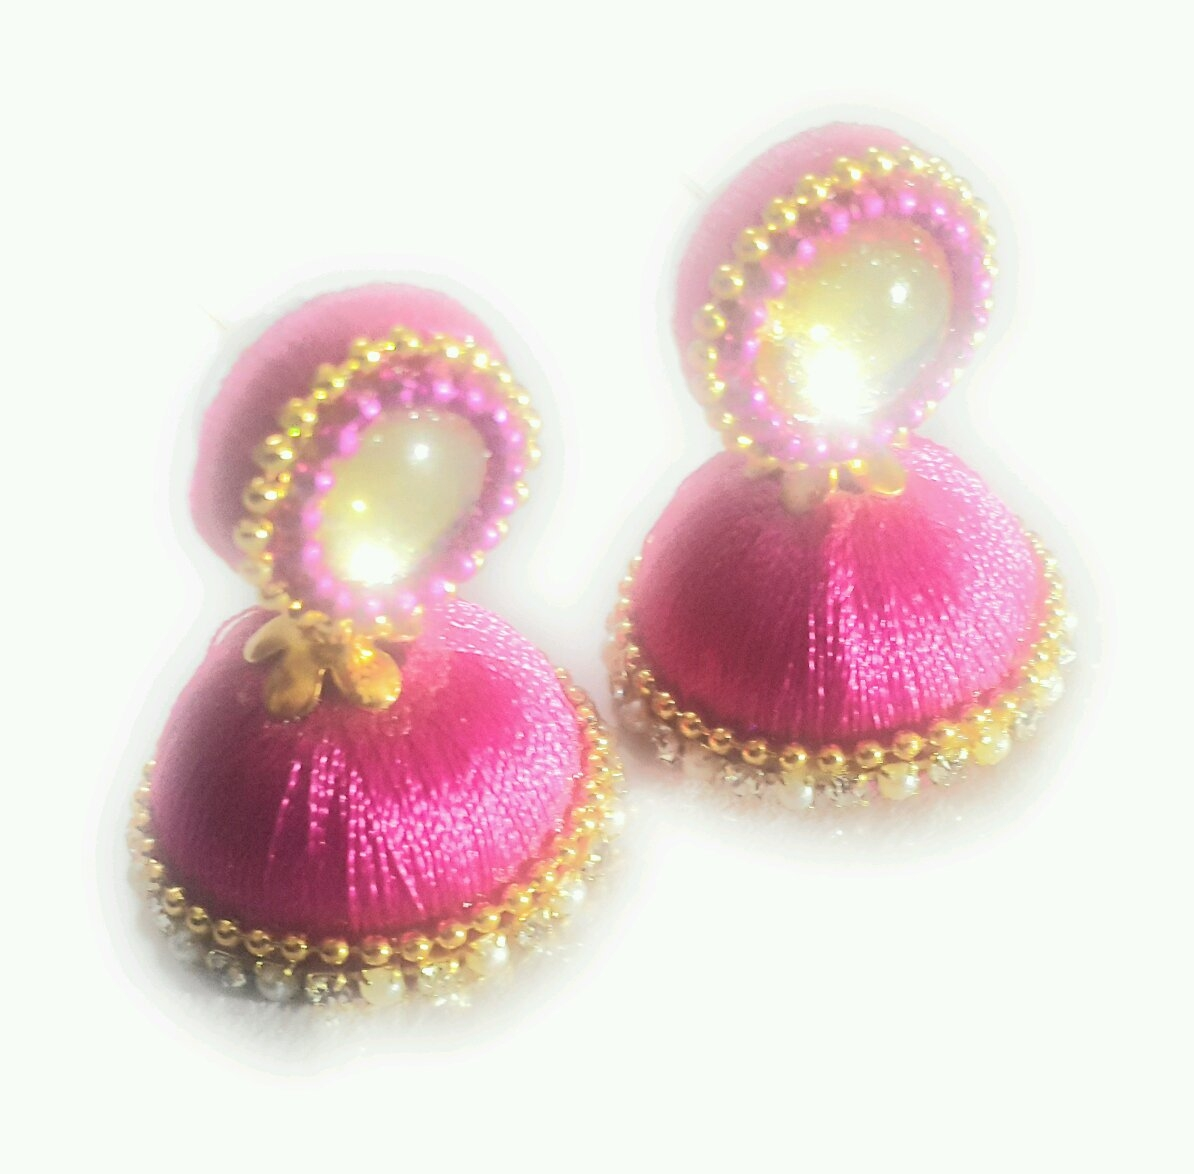 f1595fa62 Buy SAJAGO'S Designer Silk Thread Earrings online from SAJAGO Handcrafts